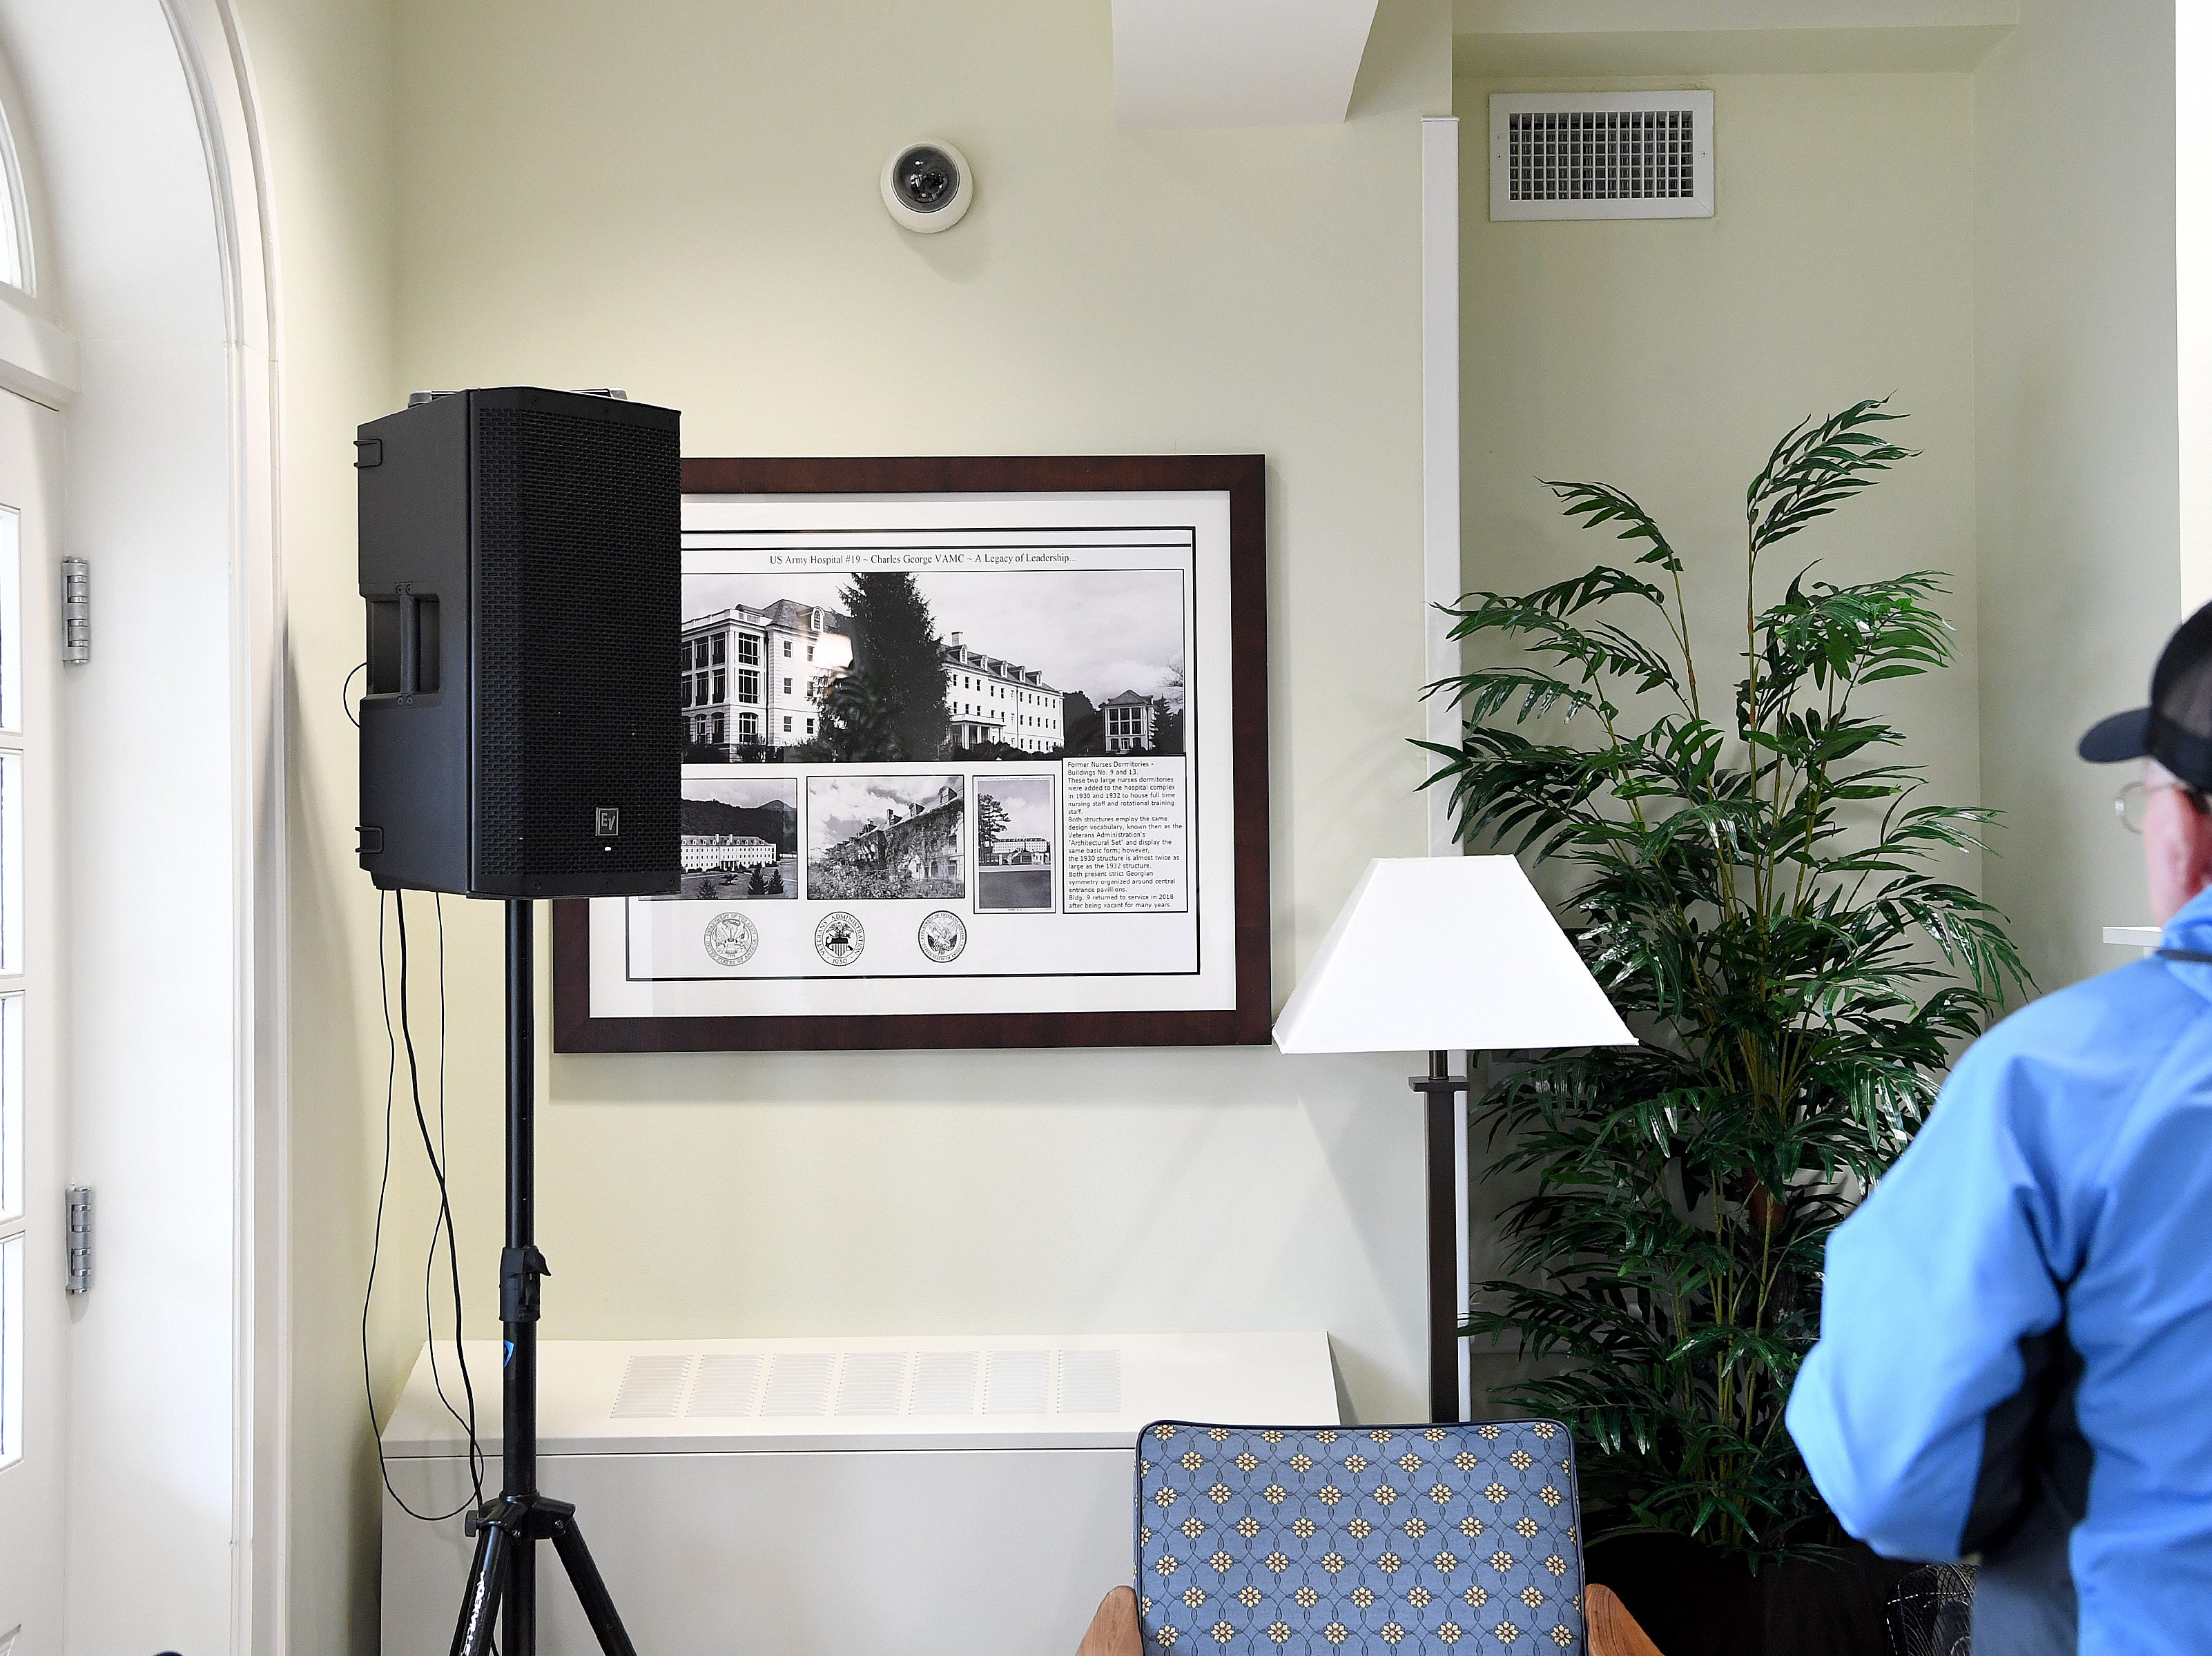 The Veterans Hope and Recovery Center on the campus of the Charles George VA Medical Center is officially open following a ribbon cutting ceremony on Oct. 26, 2018. The building was opened in the 1930s as a dormitory for nurses working on the campus.